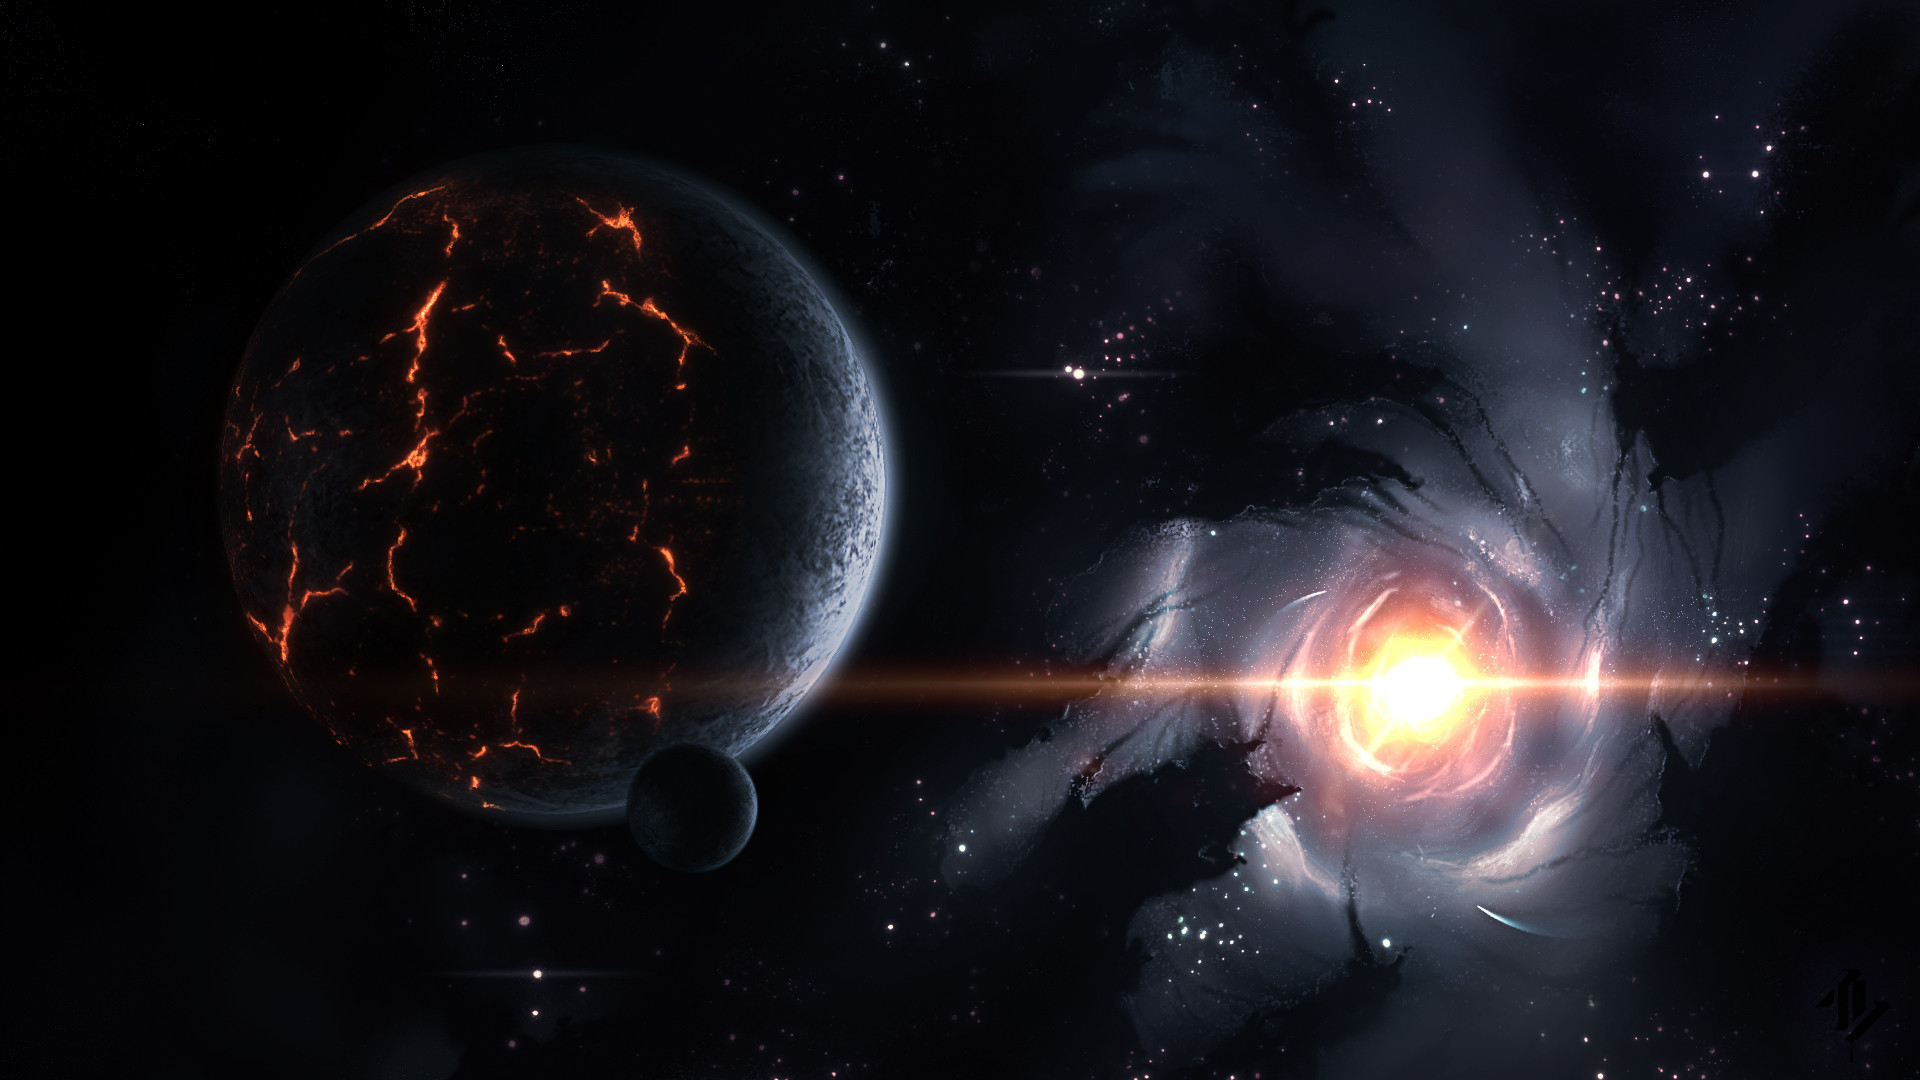 Res: 1920x1080, Space Fantasy Wallpaper 72+ - Page 2 of 3 - yese69.com - 4K Hintergründe  Welt